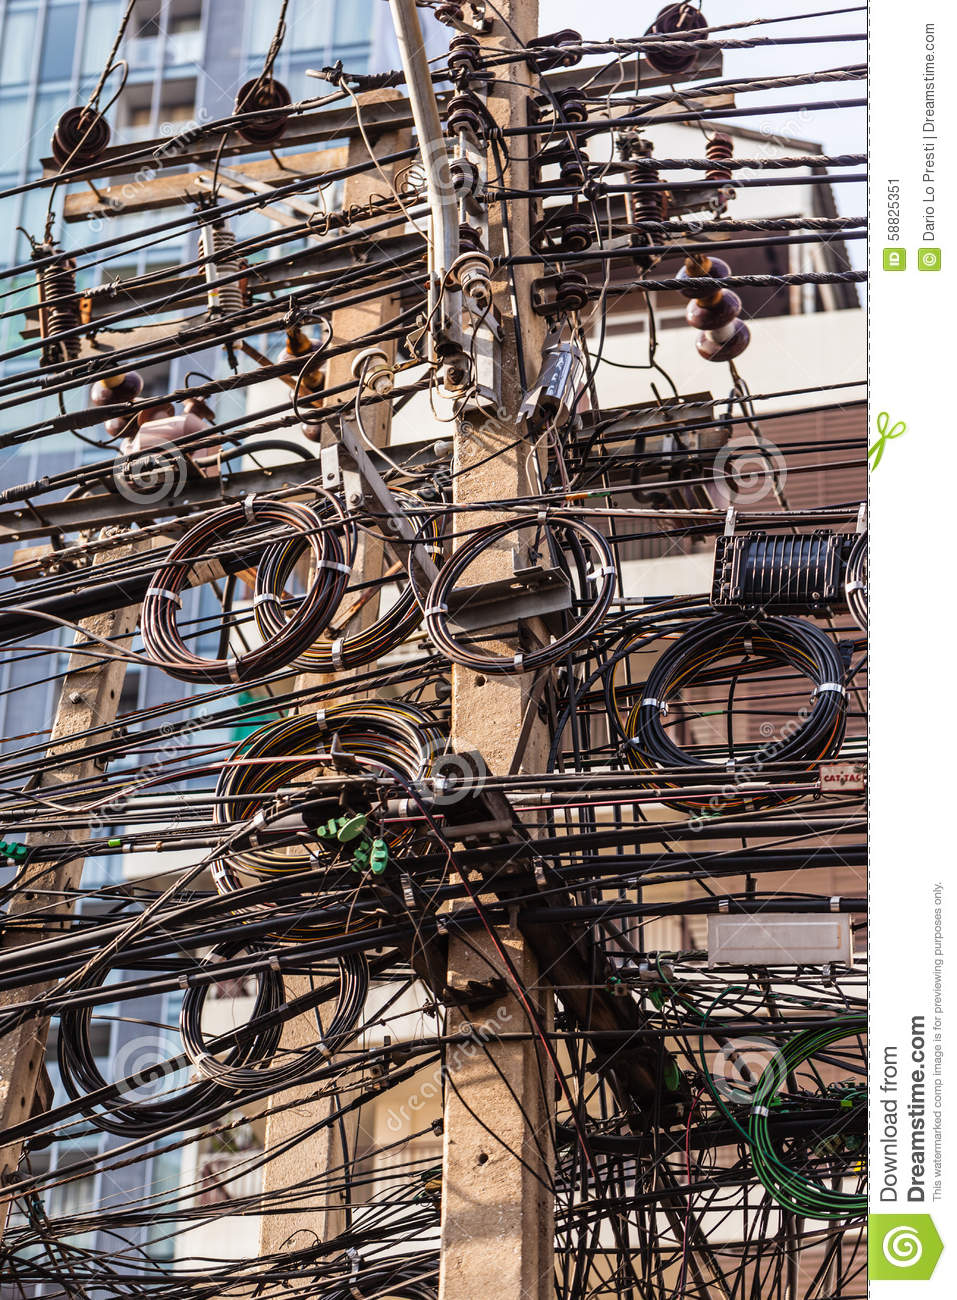 medium resolution of very messy electricity or telephone pole in bangkok thailand